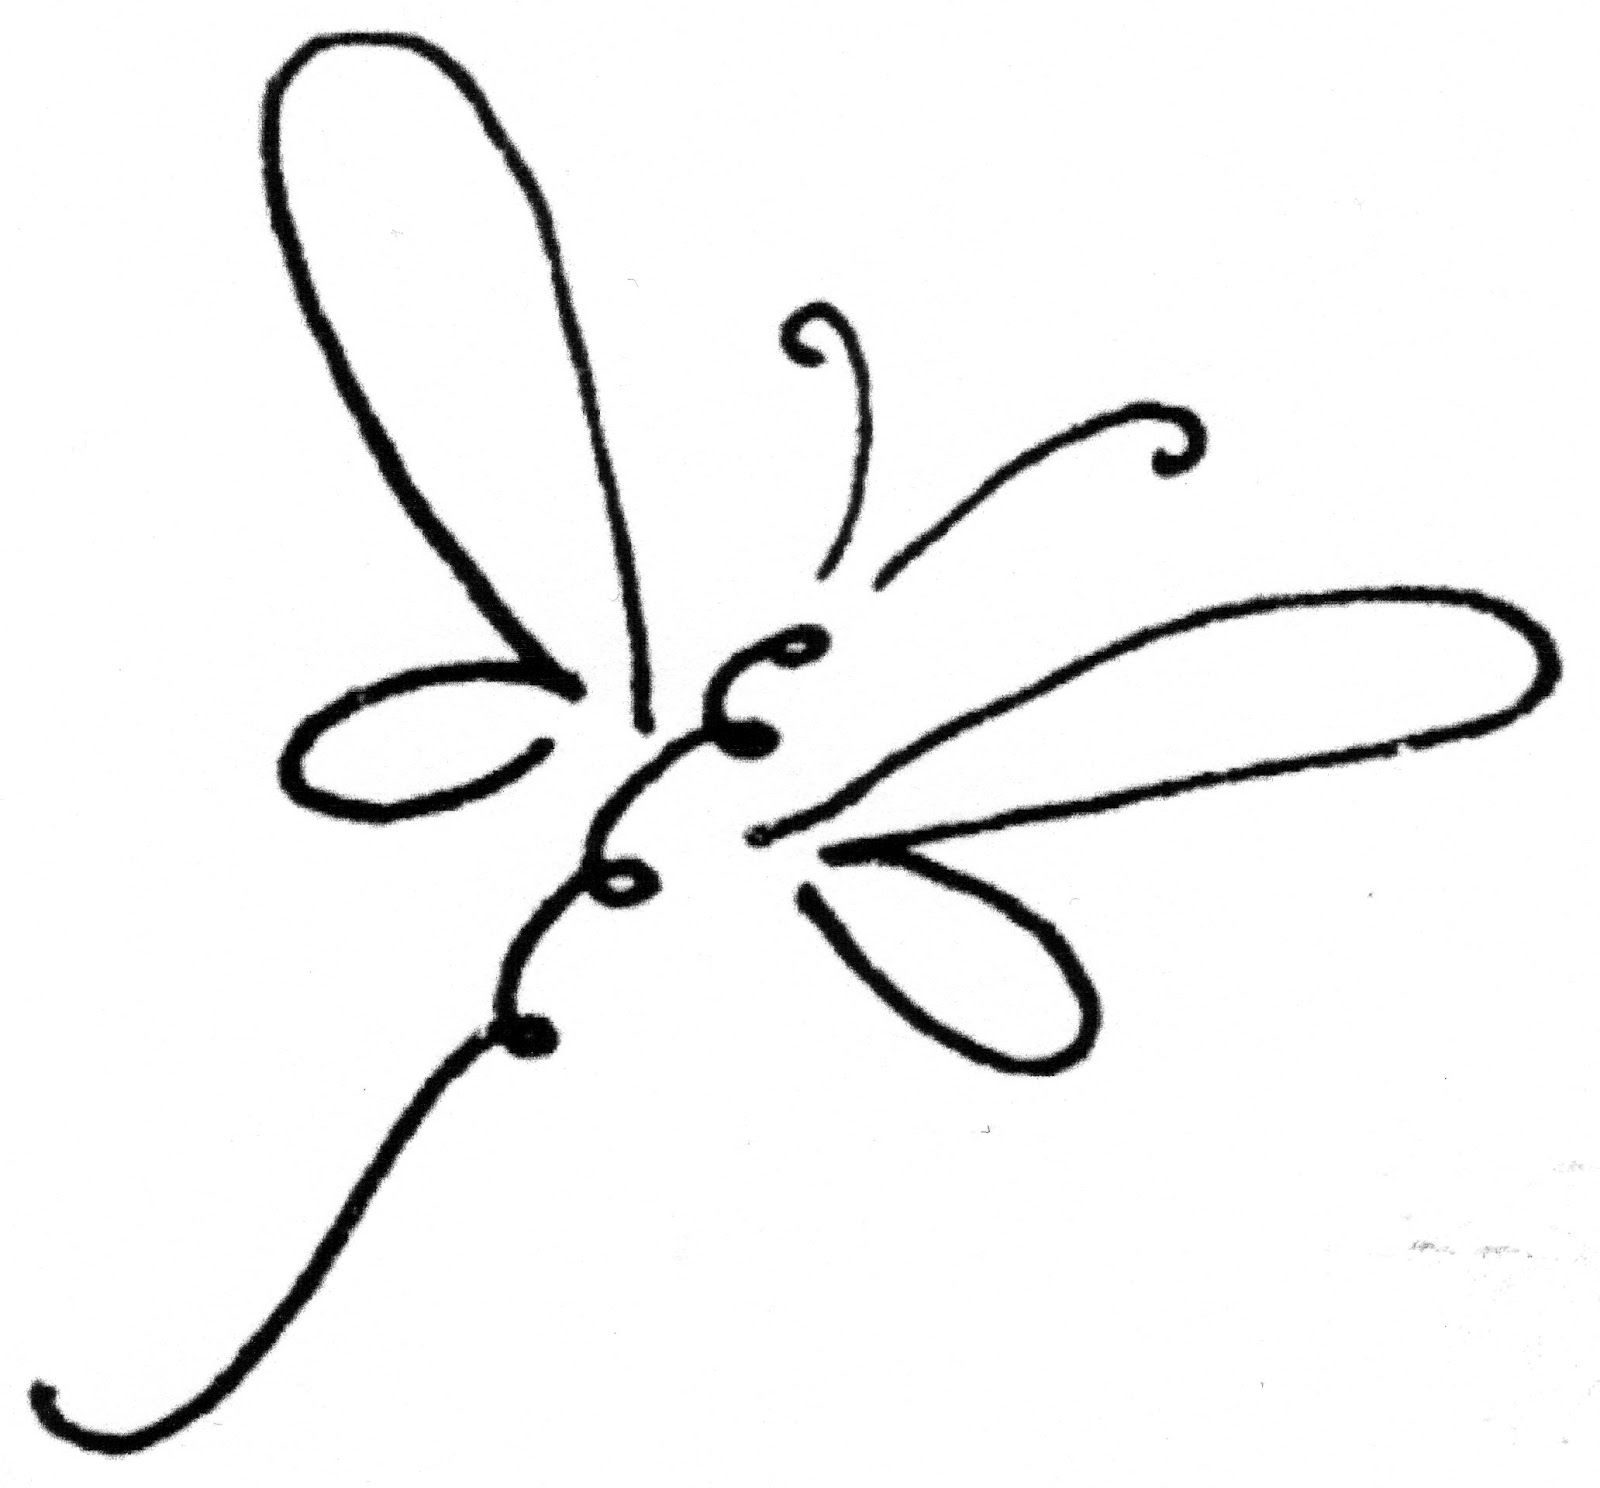 Dragonfly Clipart, Doodle Art, Line Art, Dragonfly Drawing, Dragonfly Art,  Dragonfly